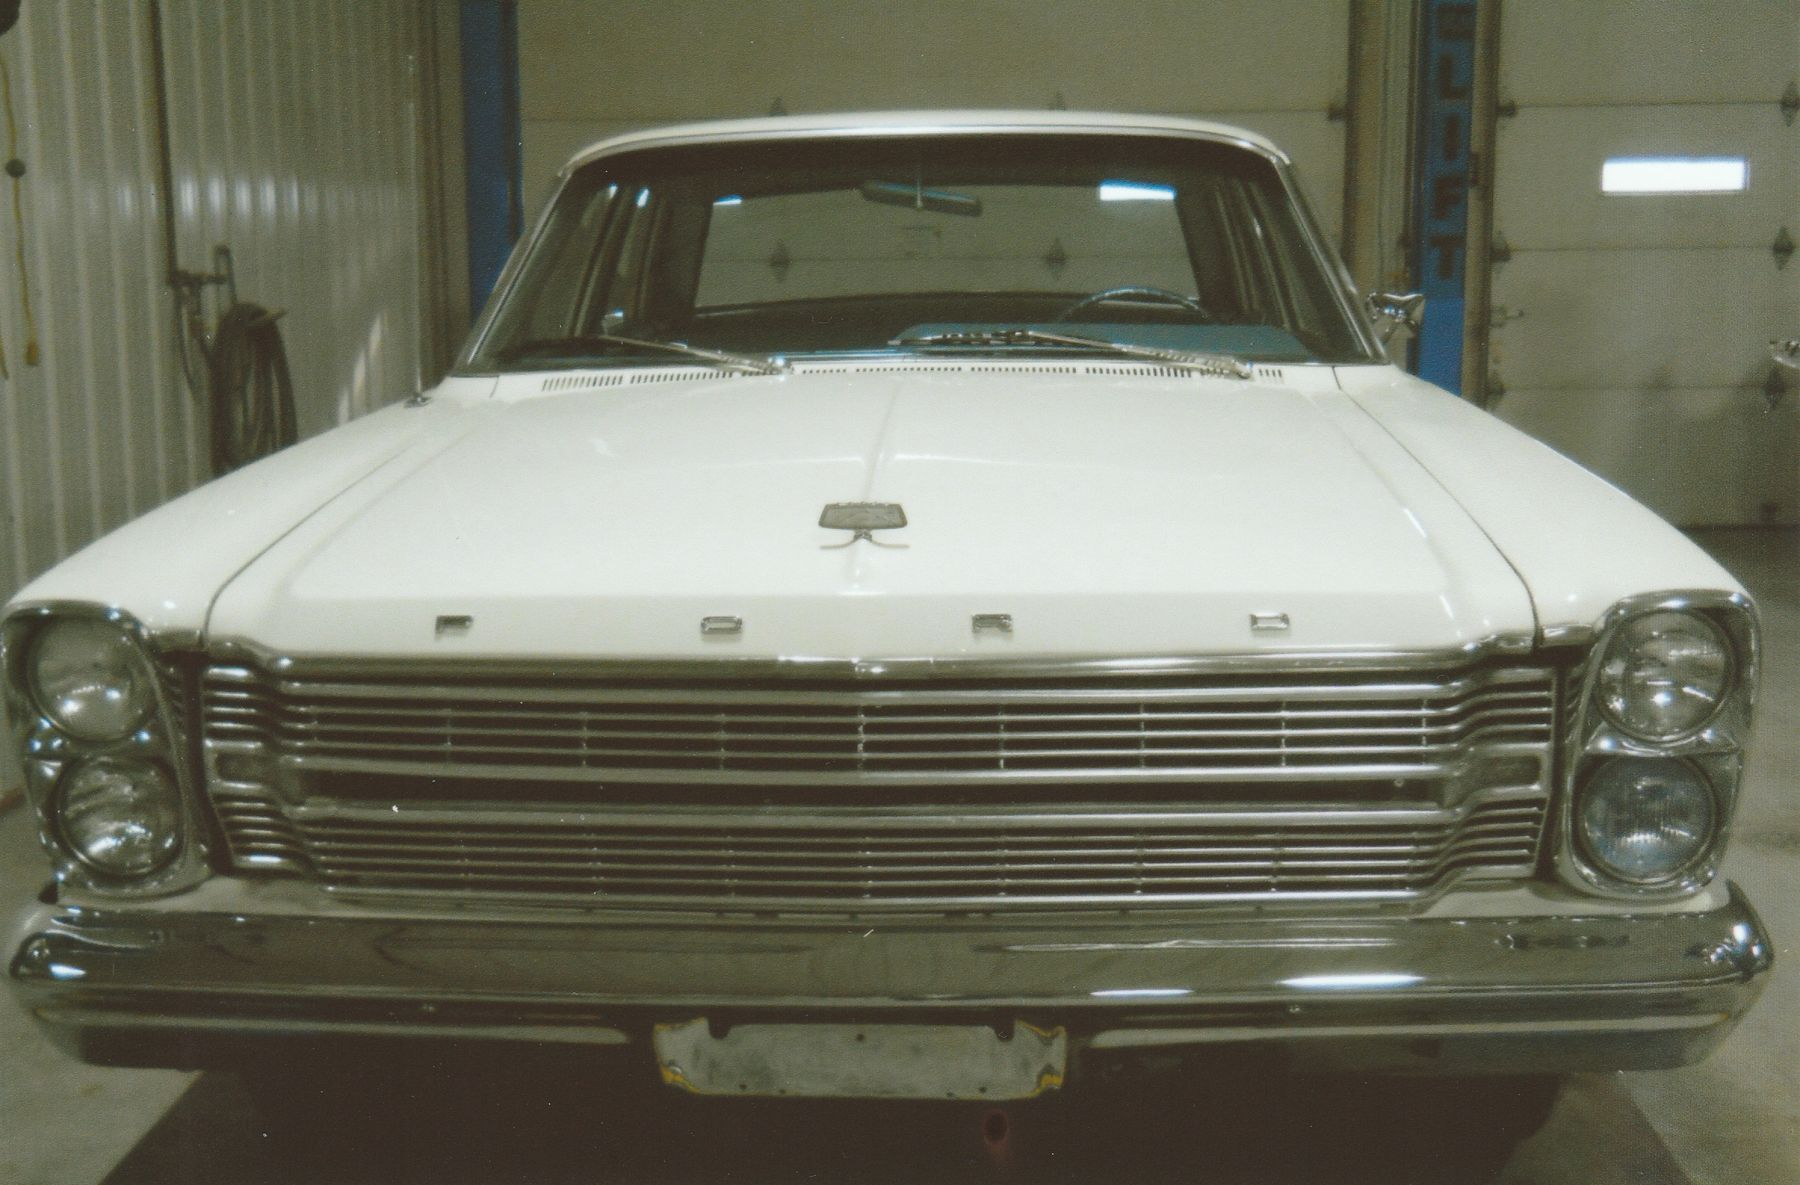 1966 Ford Galaxie 500 vertically stacked dual headlights